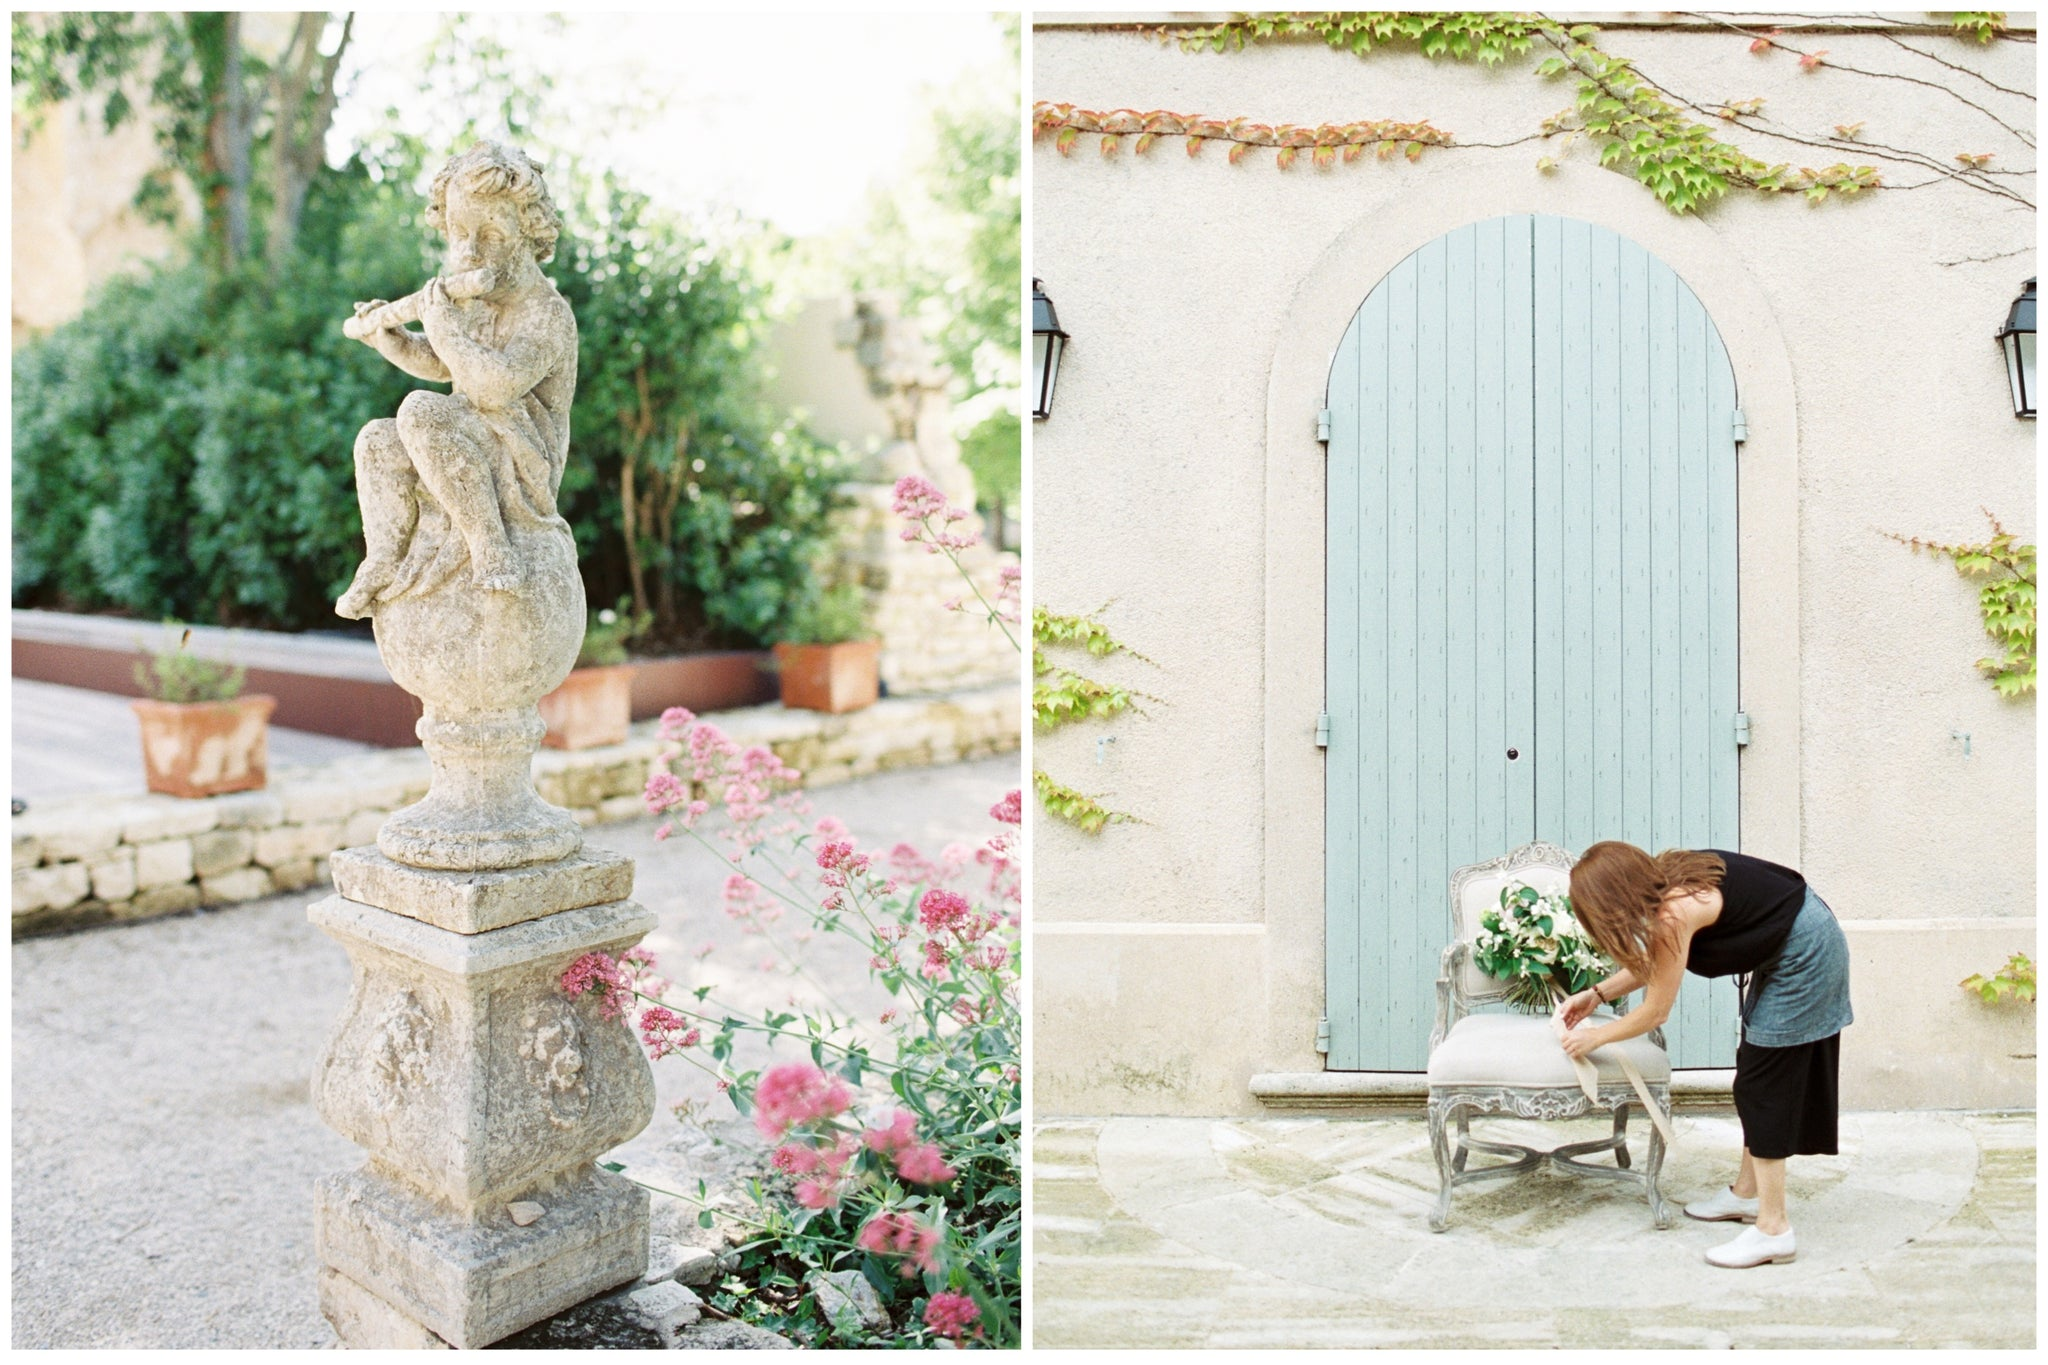 Katie Dean Jewelry, Provence, France Wedding, venue + flowers